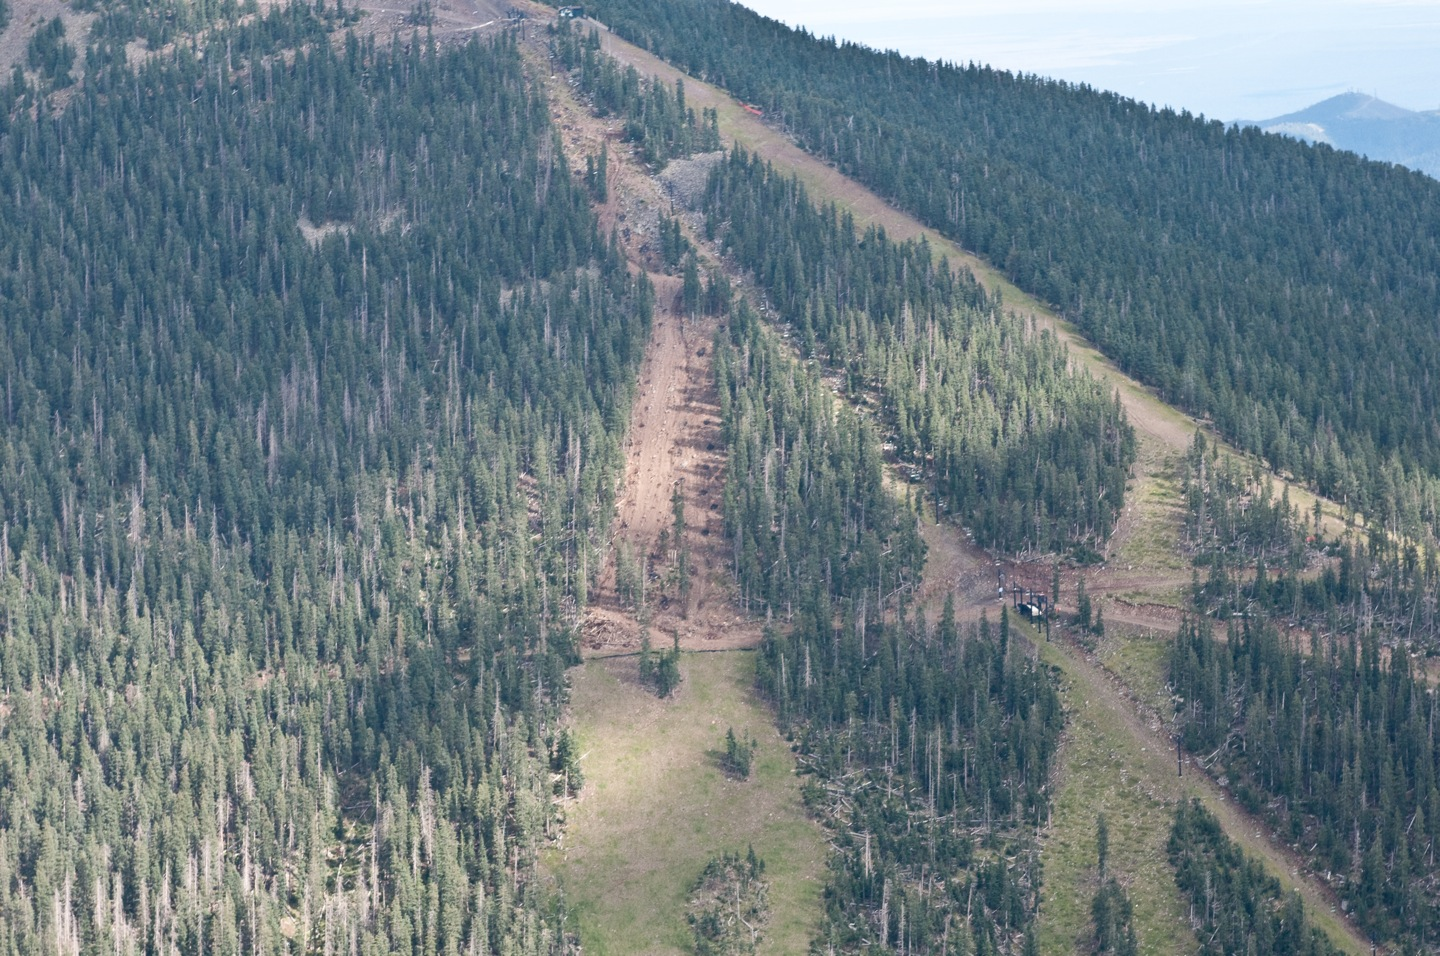 the san francisco peaks essay There are four mountains that act as landmarks are tsisnaasjini' (mount blanca), tsoodzil (mount taylor), doko'oosliid (san francisco peaks) navajo culture essay.